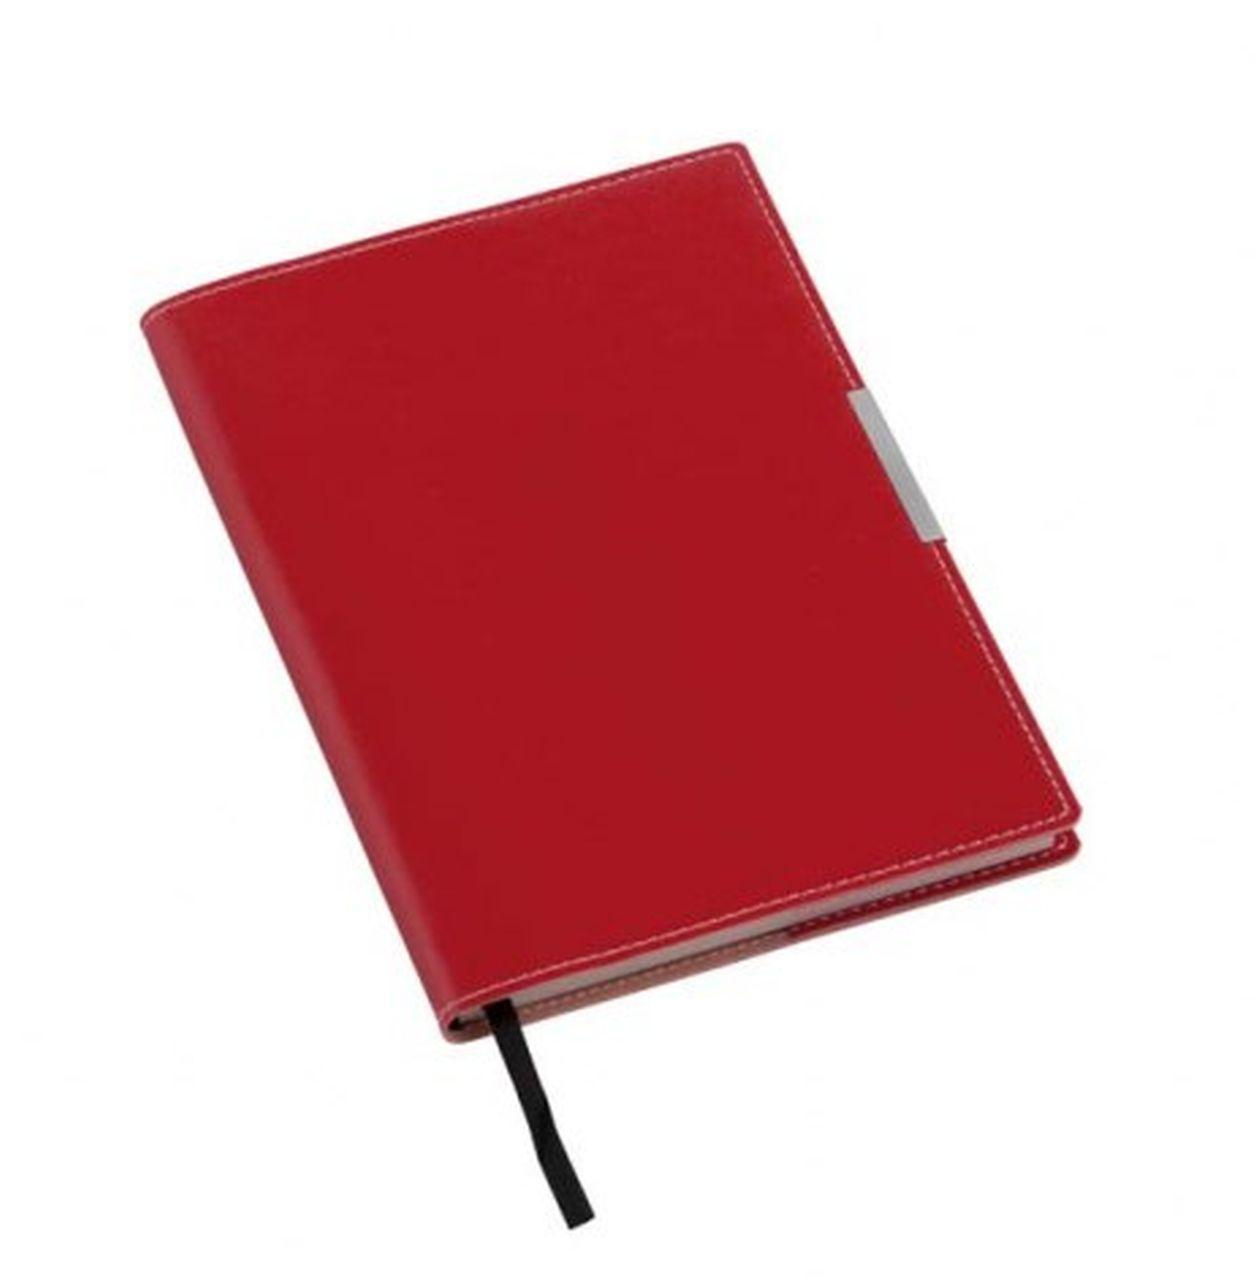 Notebook rosso placca argento cm.21,5x15x1h